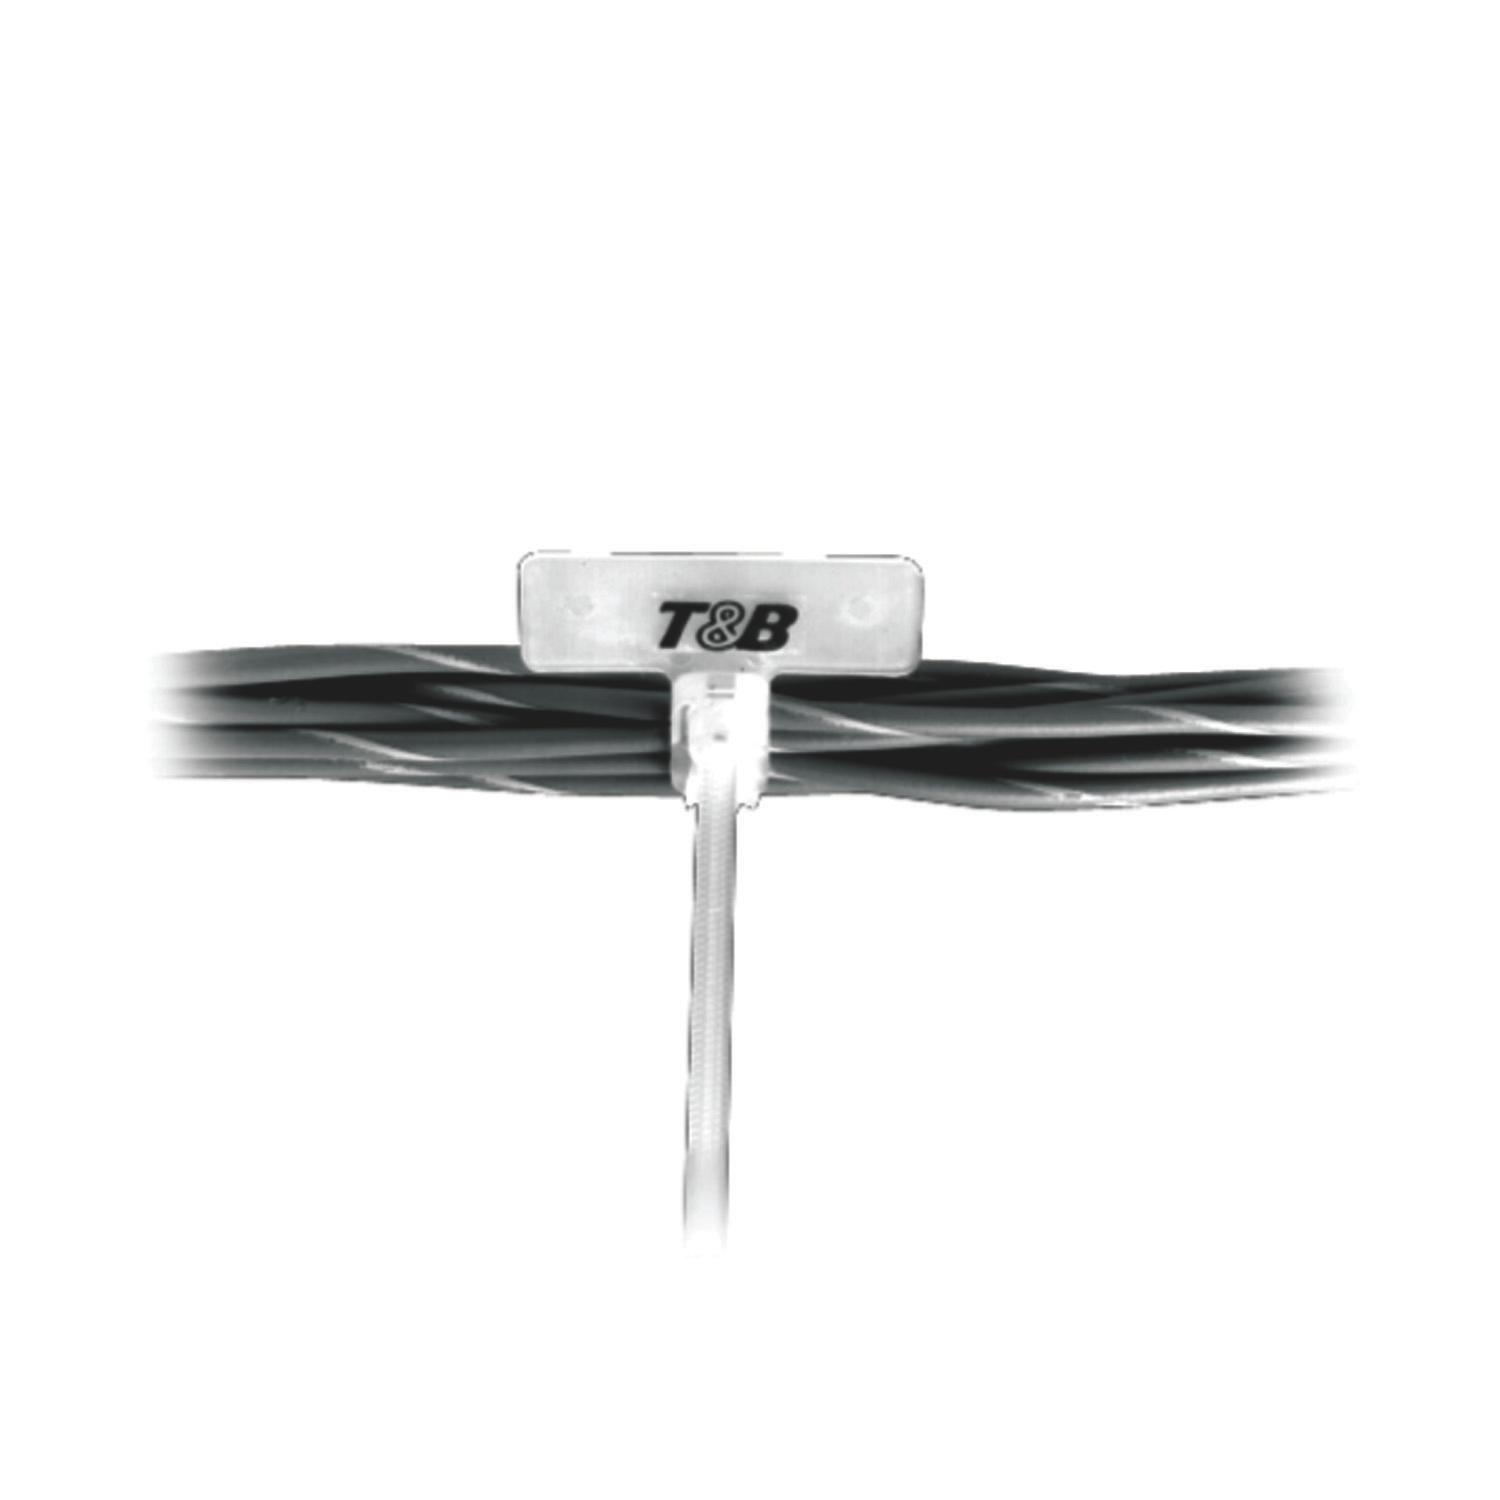 T&B TC524 CABLE TIE NYLON SNAP-ONID